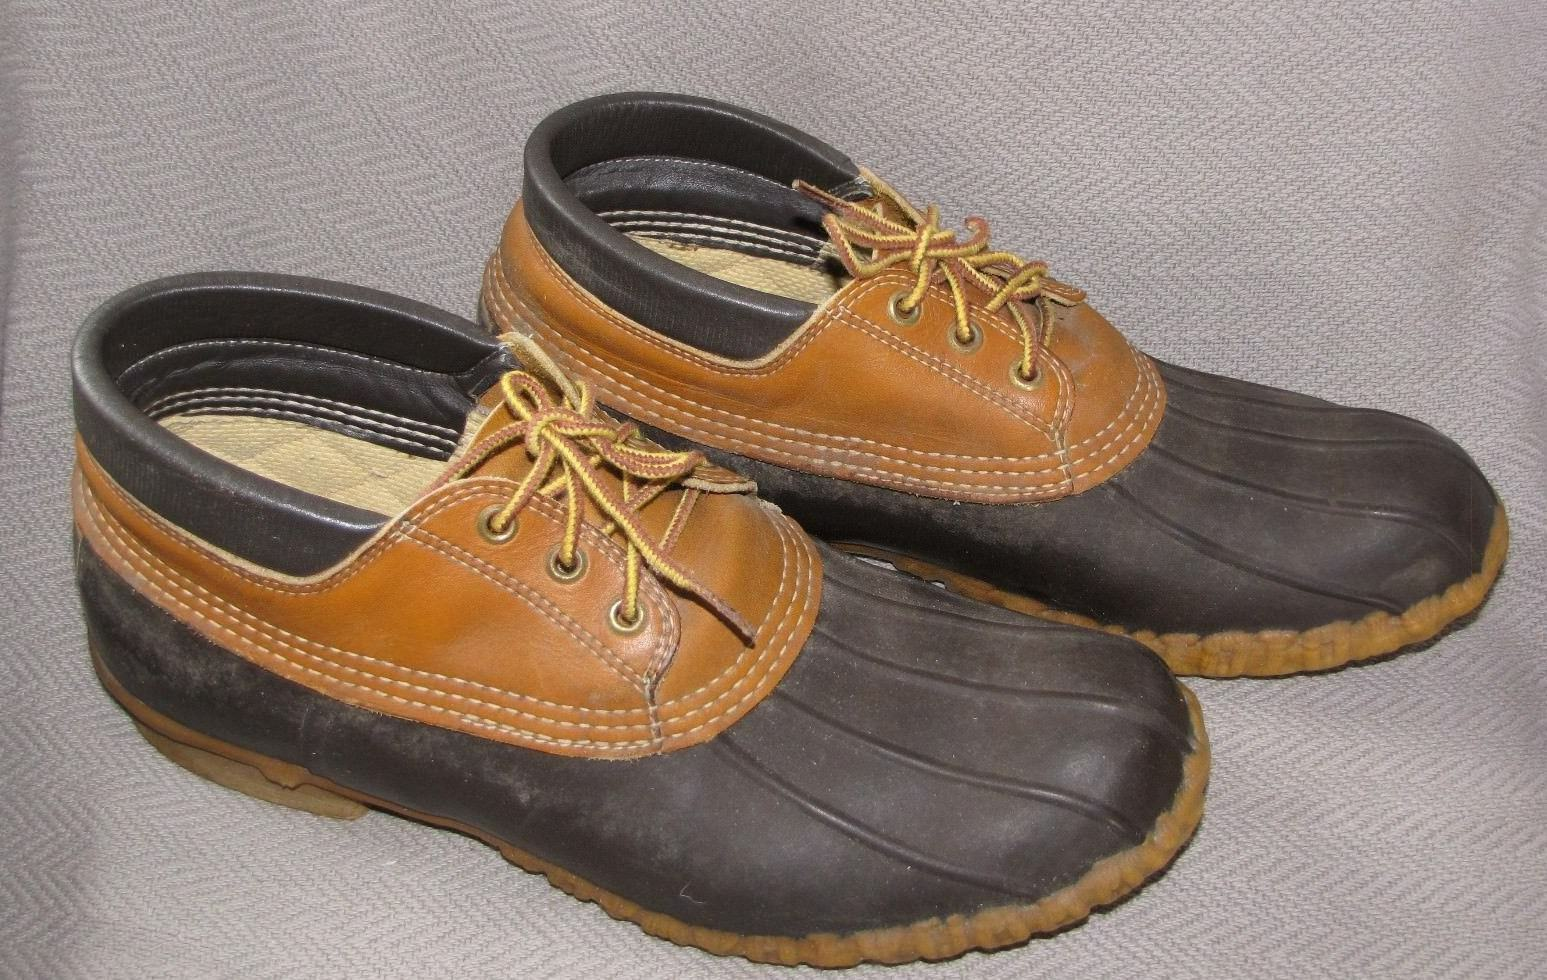 Vintage LL Bean Maine Hunting shoes Men's Gumshoe Duck Low Lo Boots Size 10 Brown